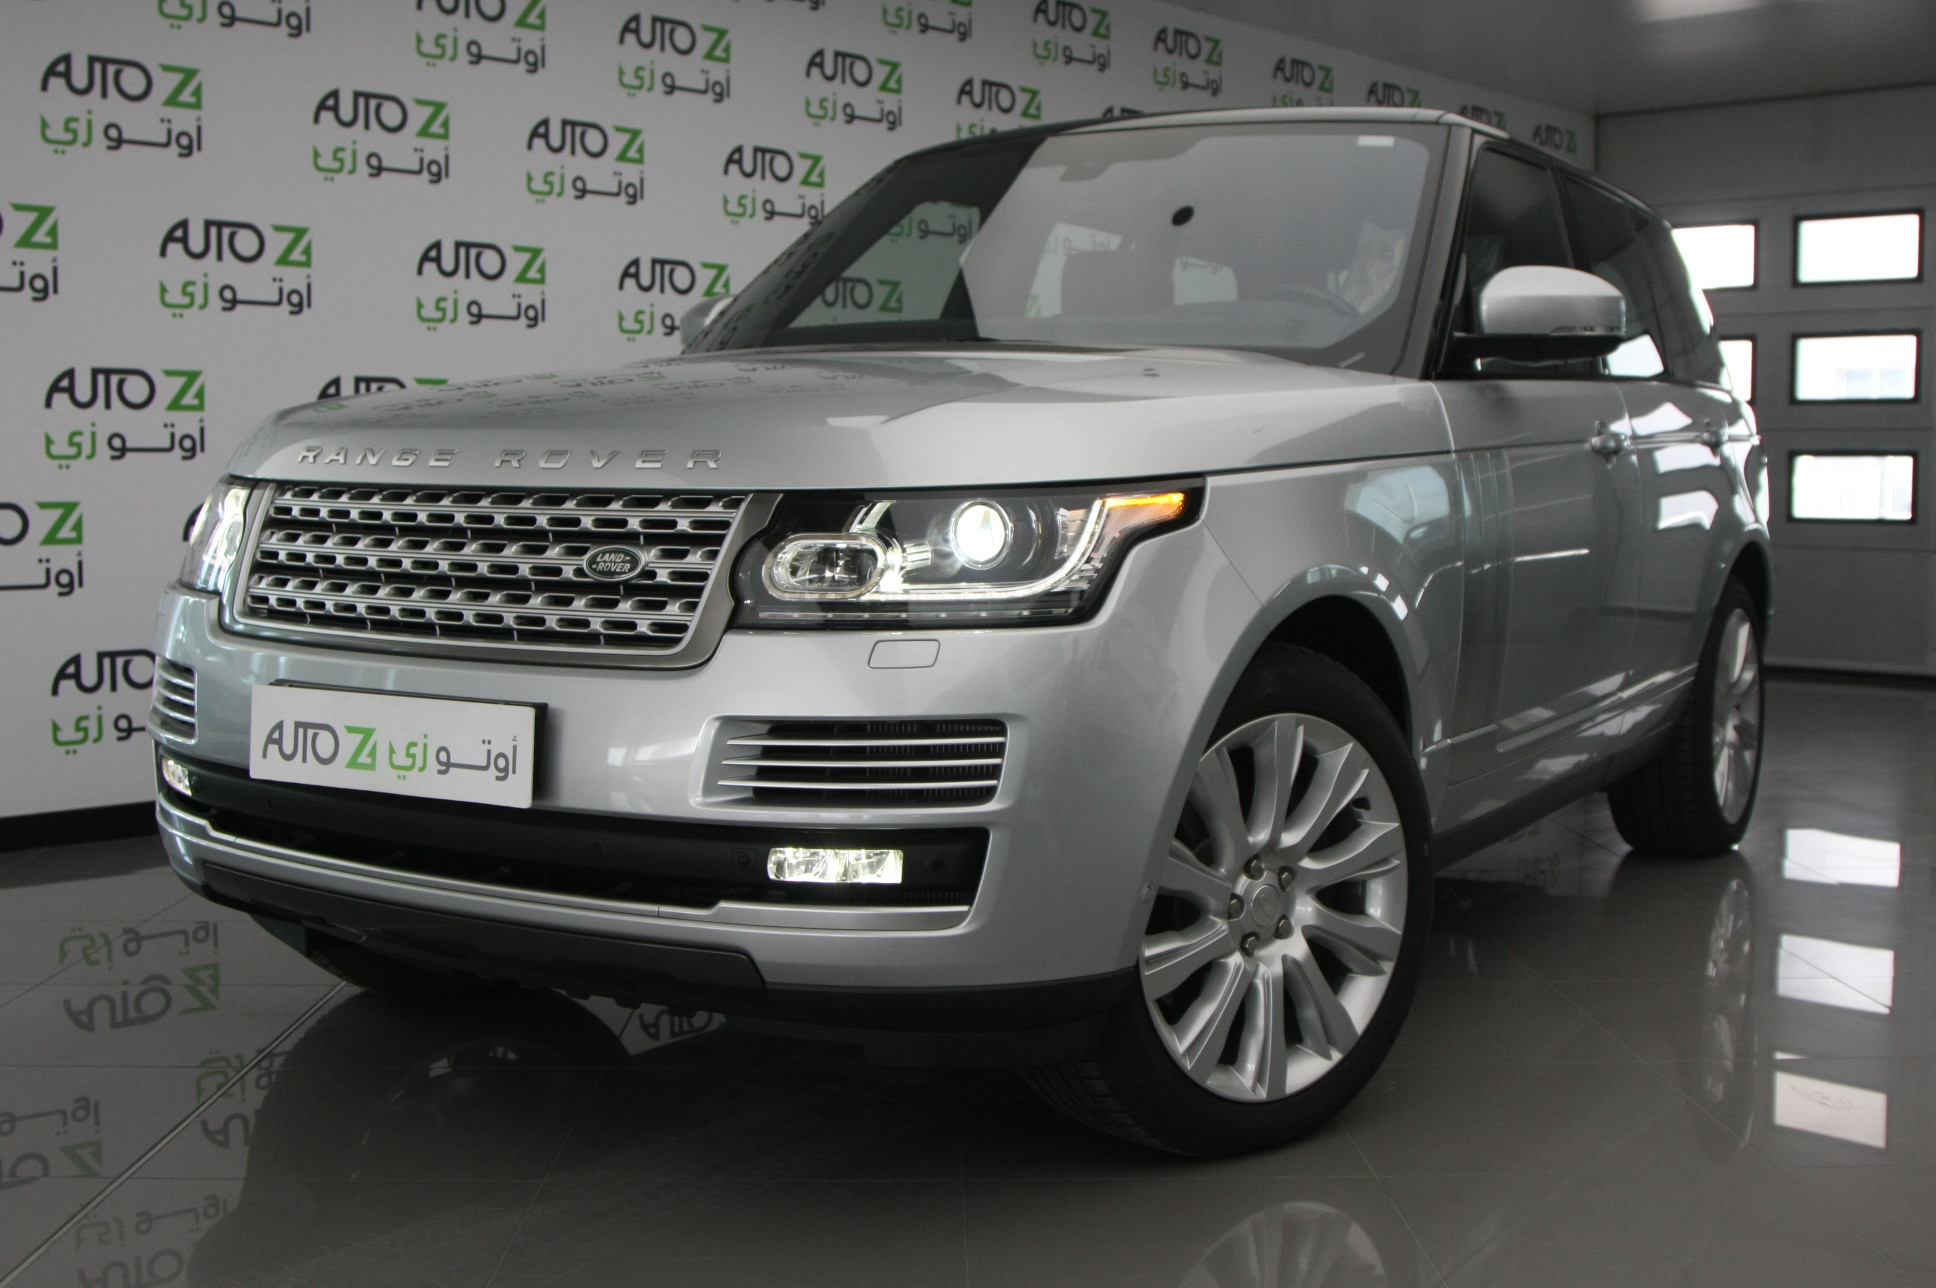 Range Rover – Vogue Supercharged